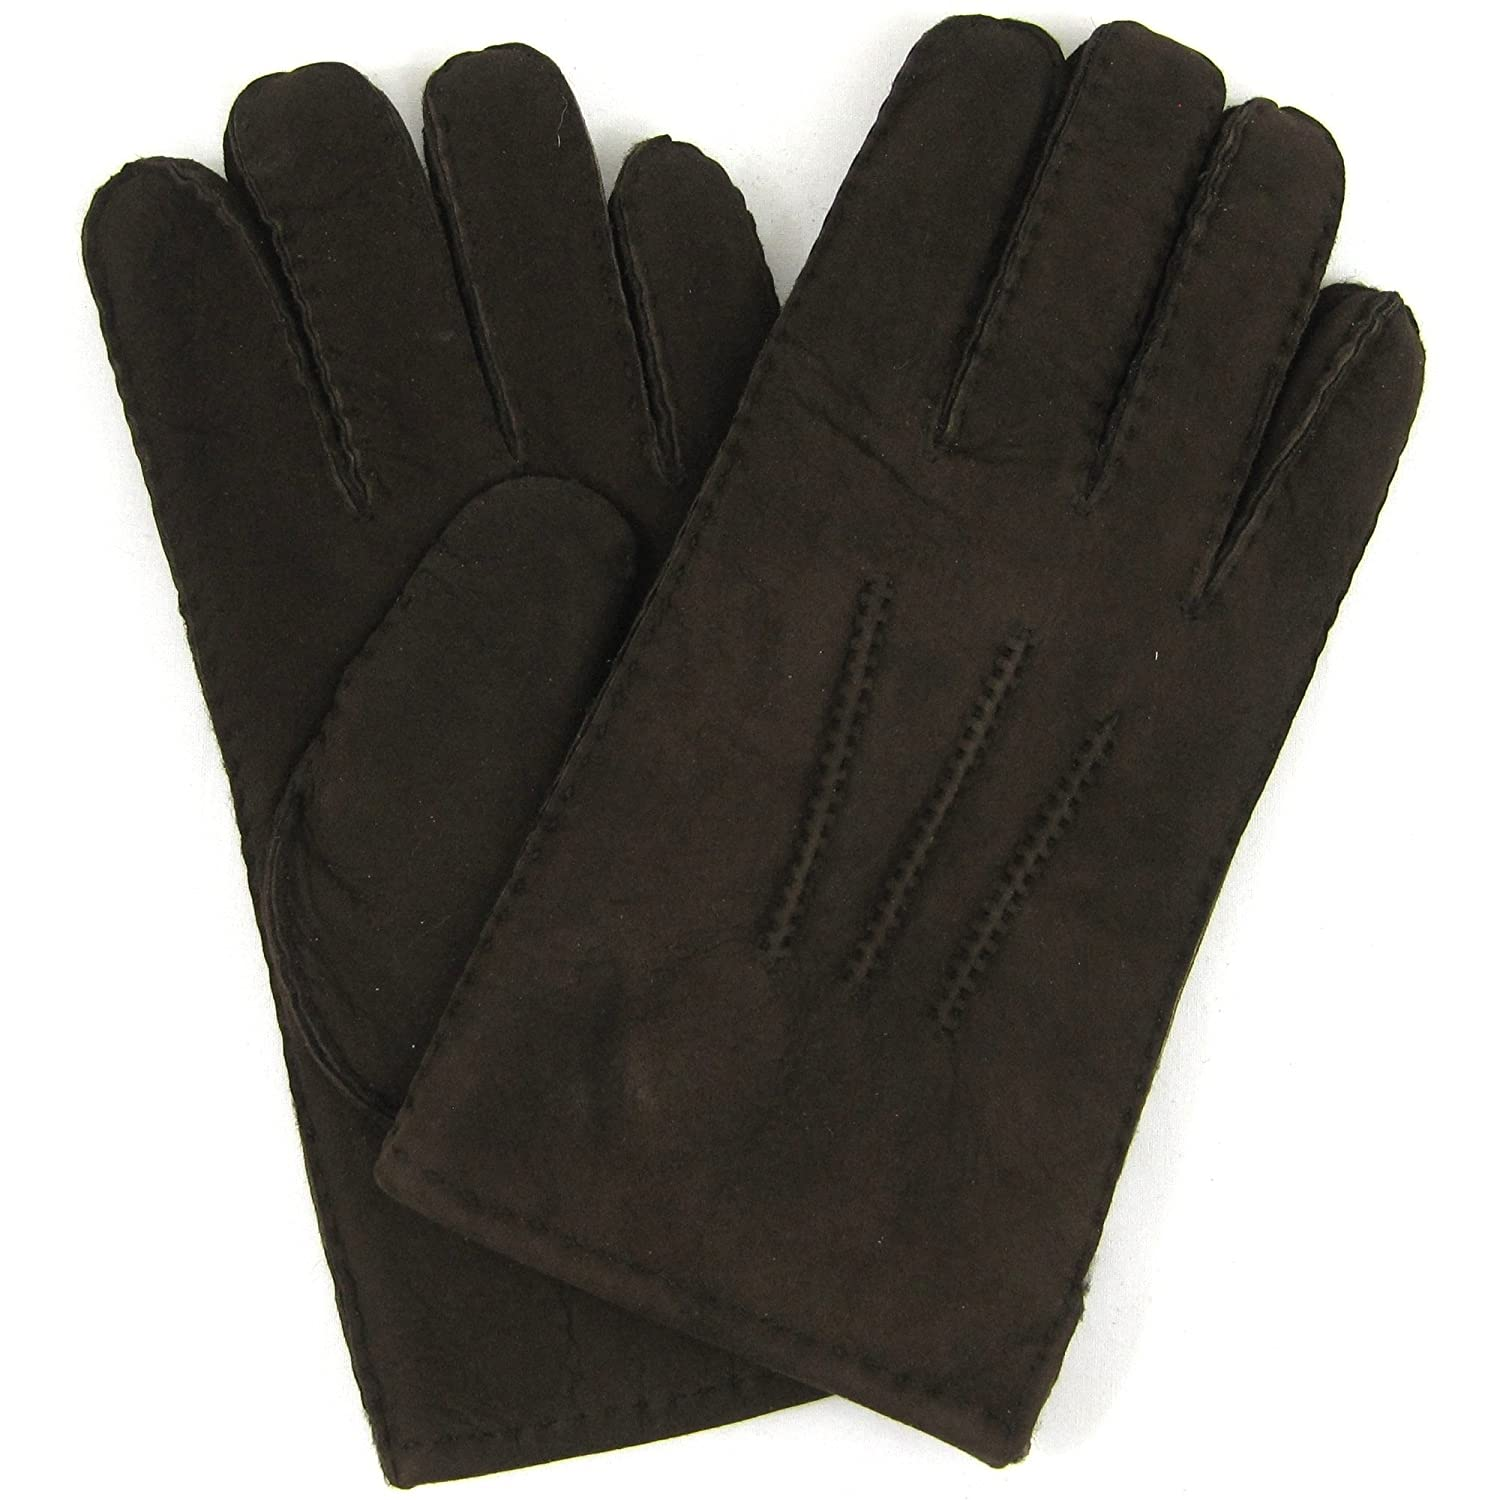 Mens sizes in gloves - Mens Luxury Full Sheepskin Gloves Coffee Brown Sizes Small To Extra Large